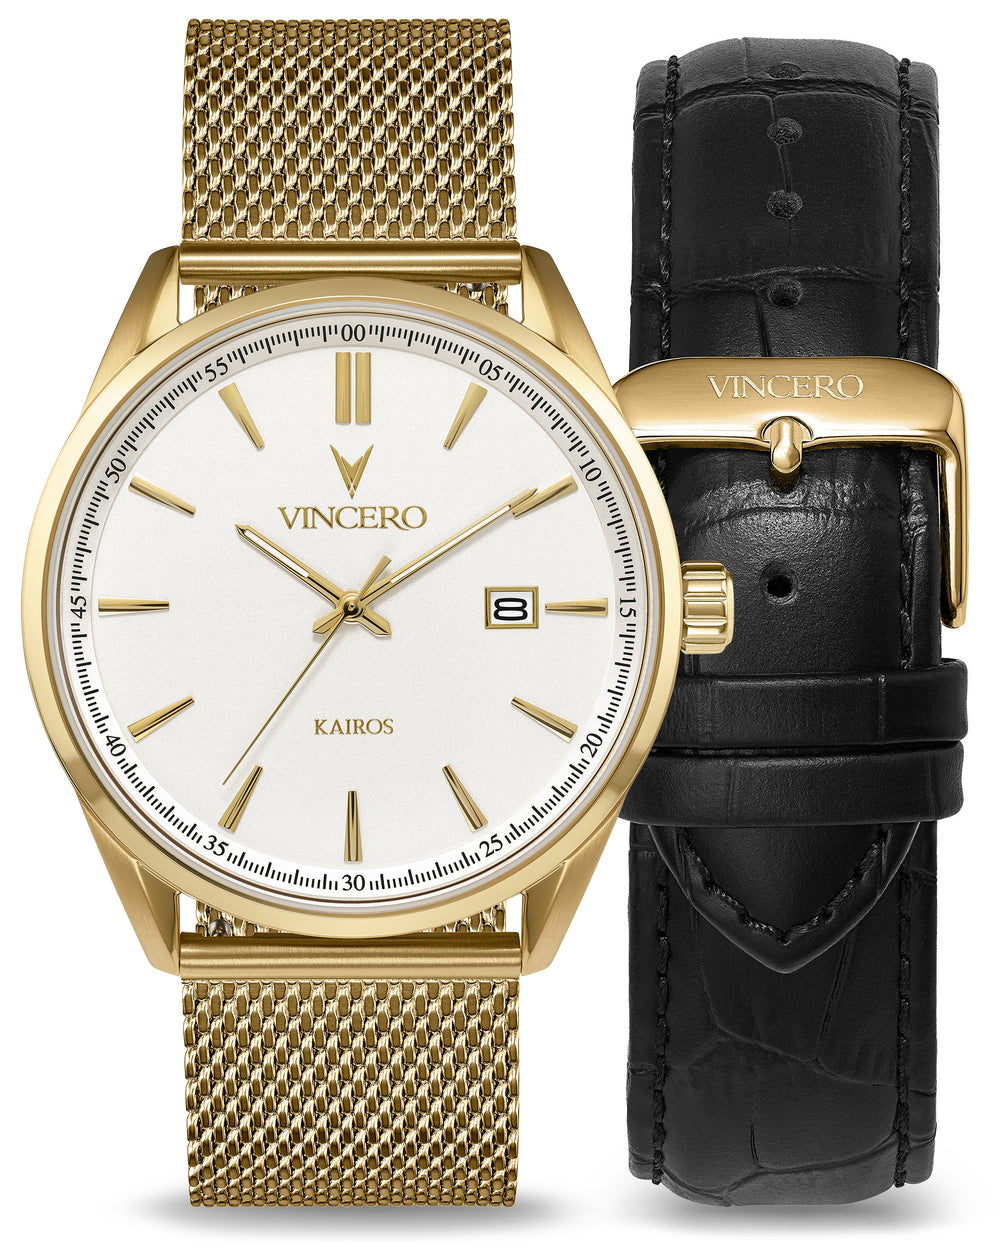 The Kairos Limited Release - Gold Reserve Set